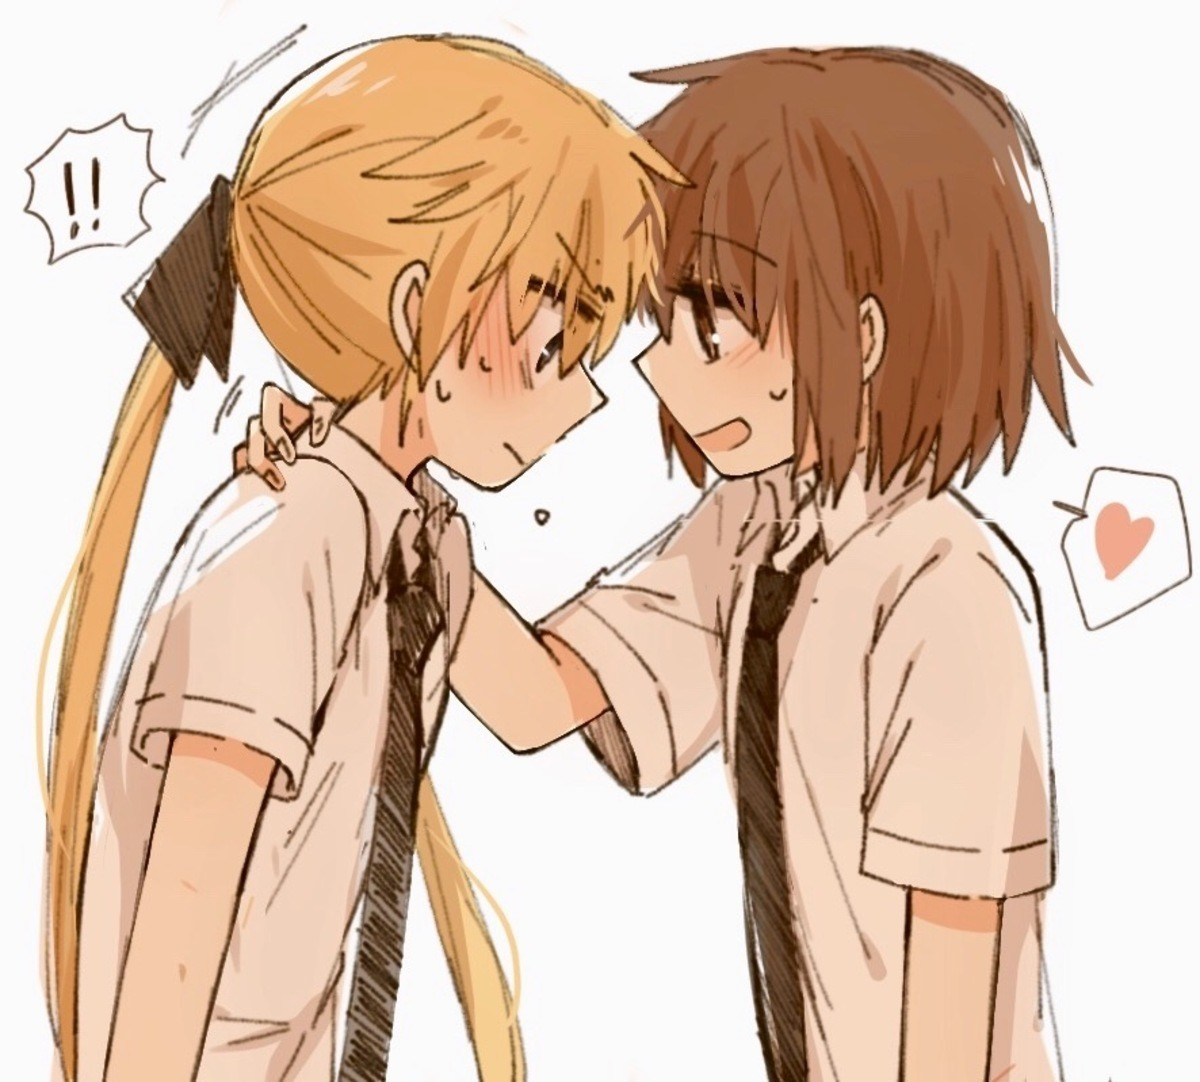 recognize them?. .. Kill Me Baby Don't remember their name, just the animu. Was cute and gay.